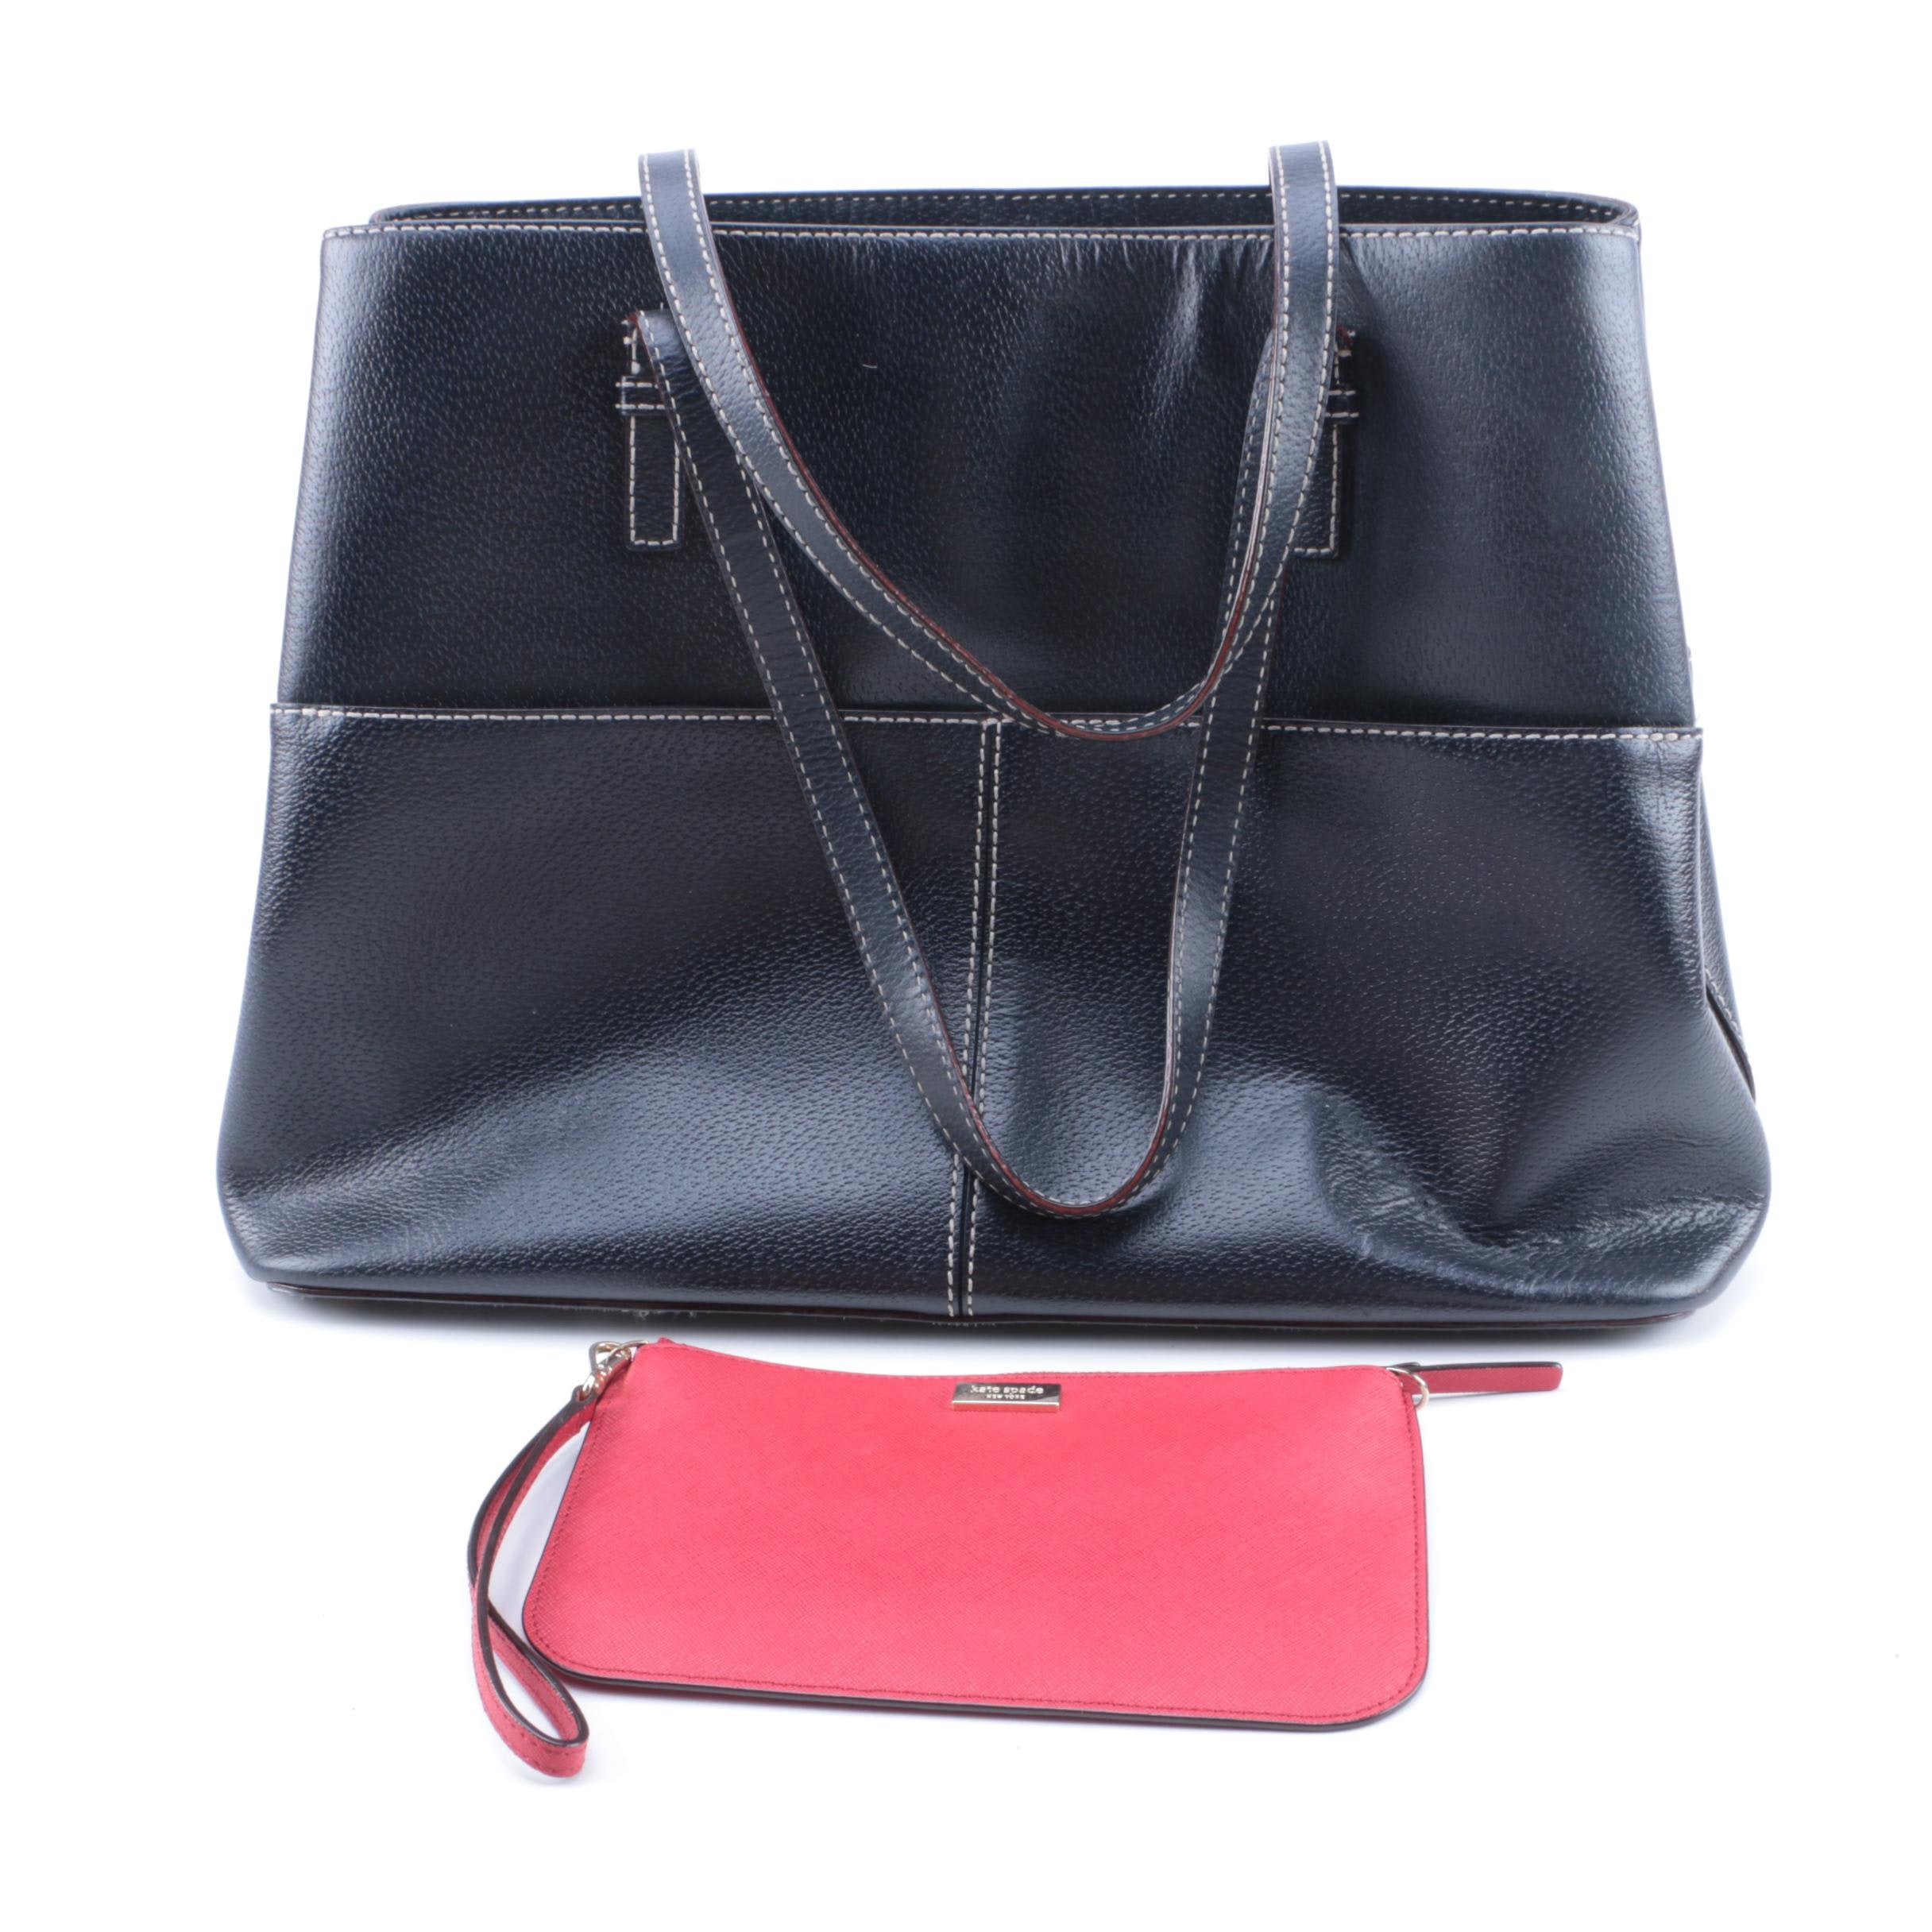 Kate Spade New York Black Leather Tote and Kate Spade Pink Wristlet